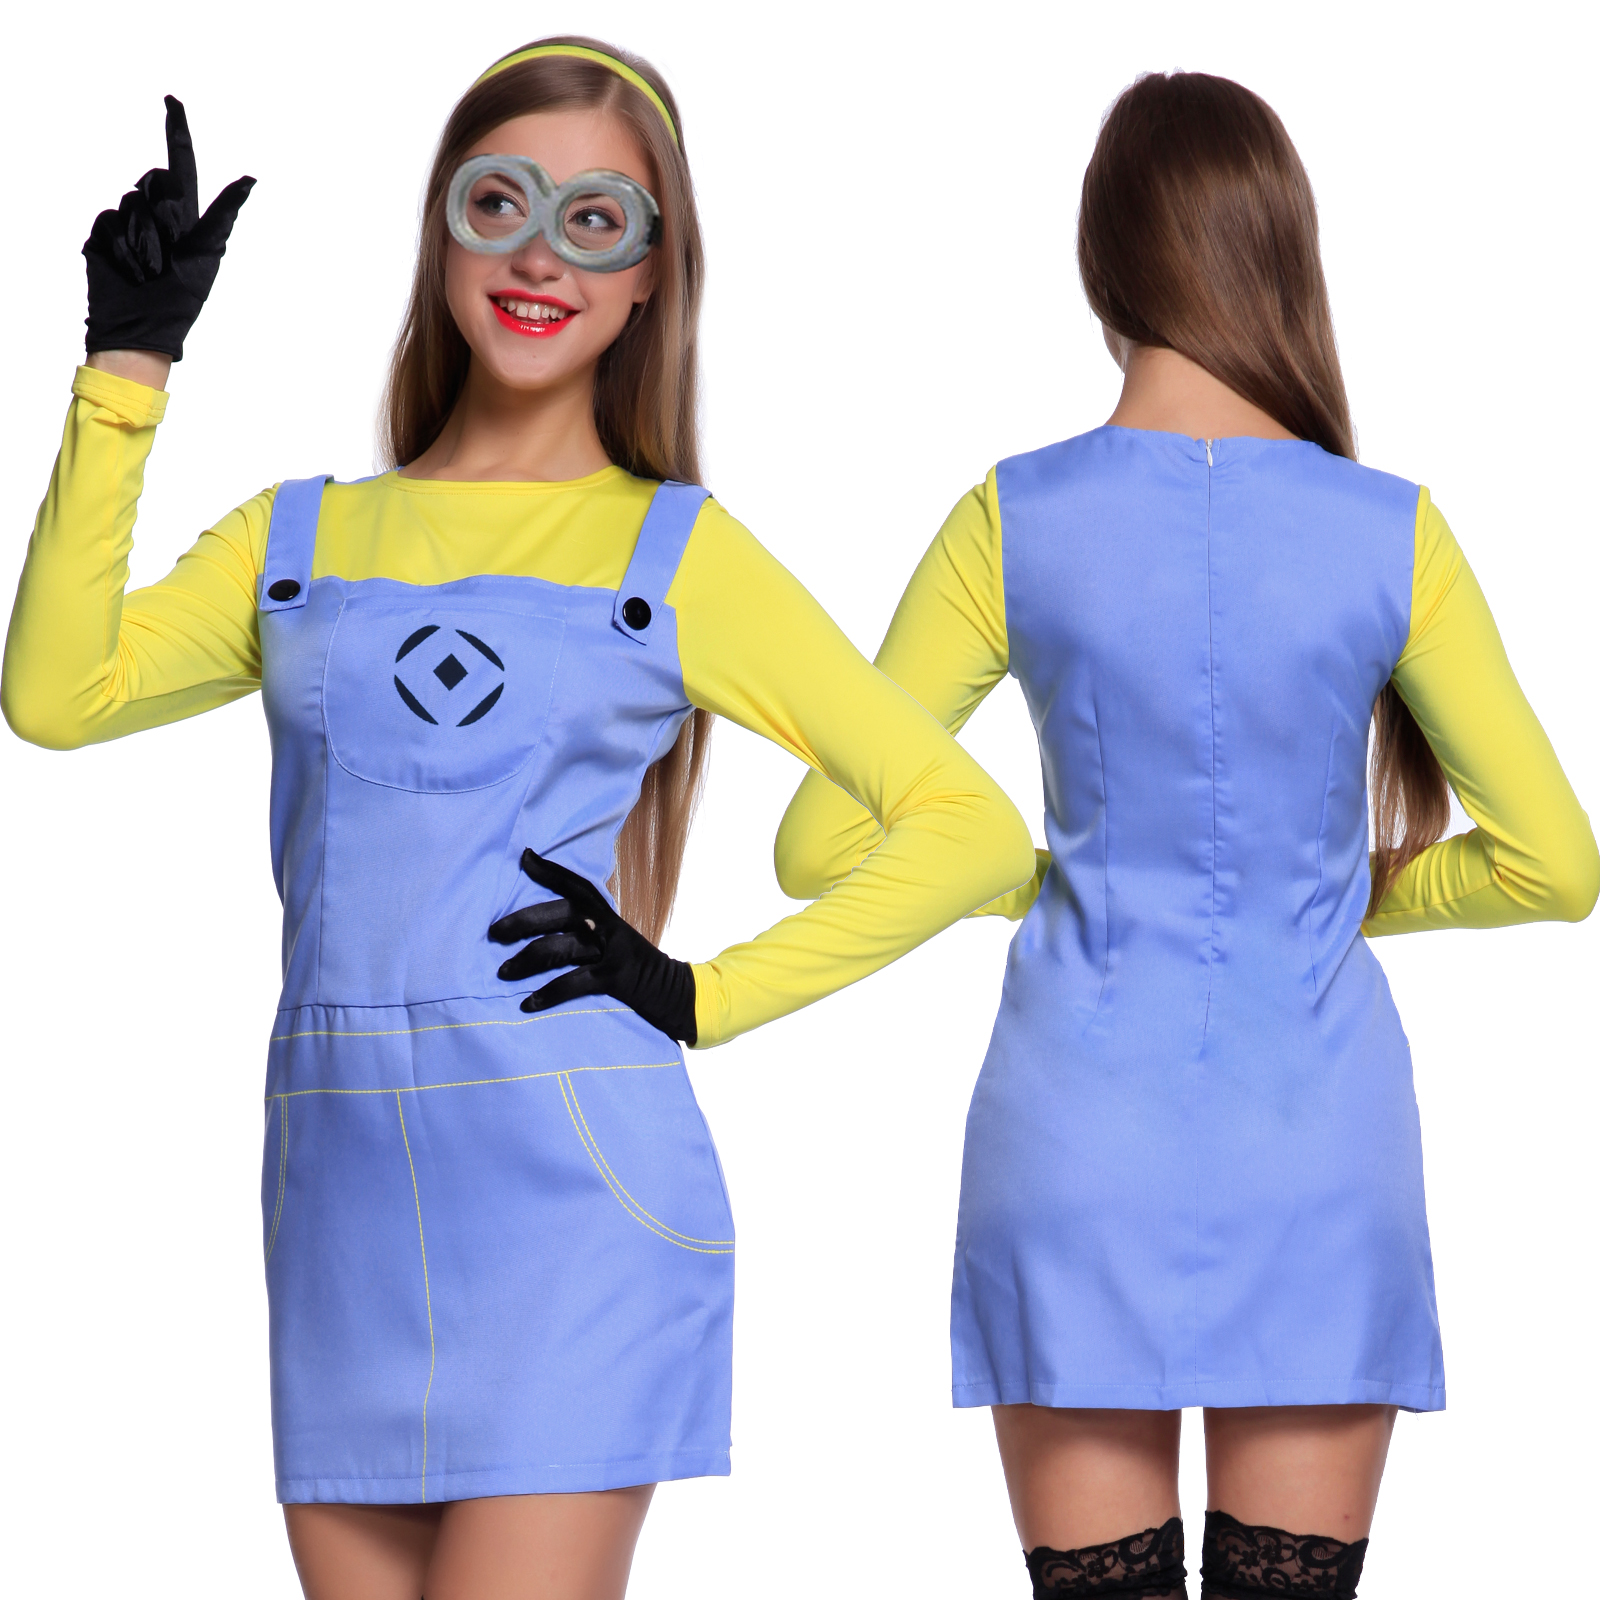 lovely minion outfit for women 8